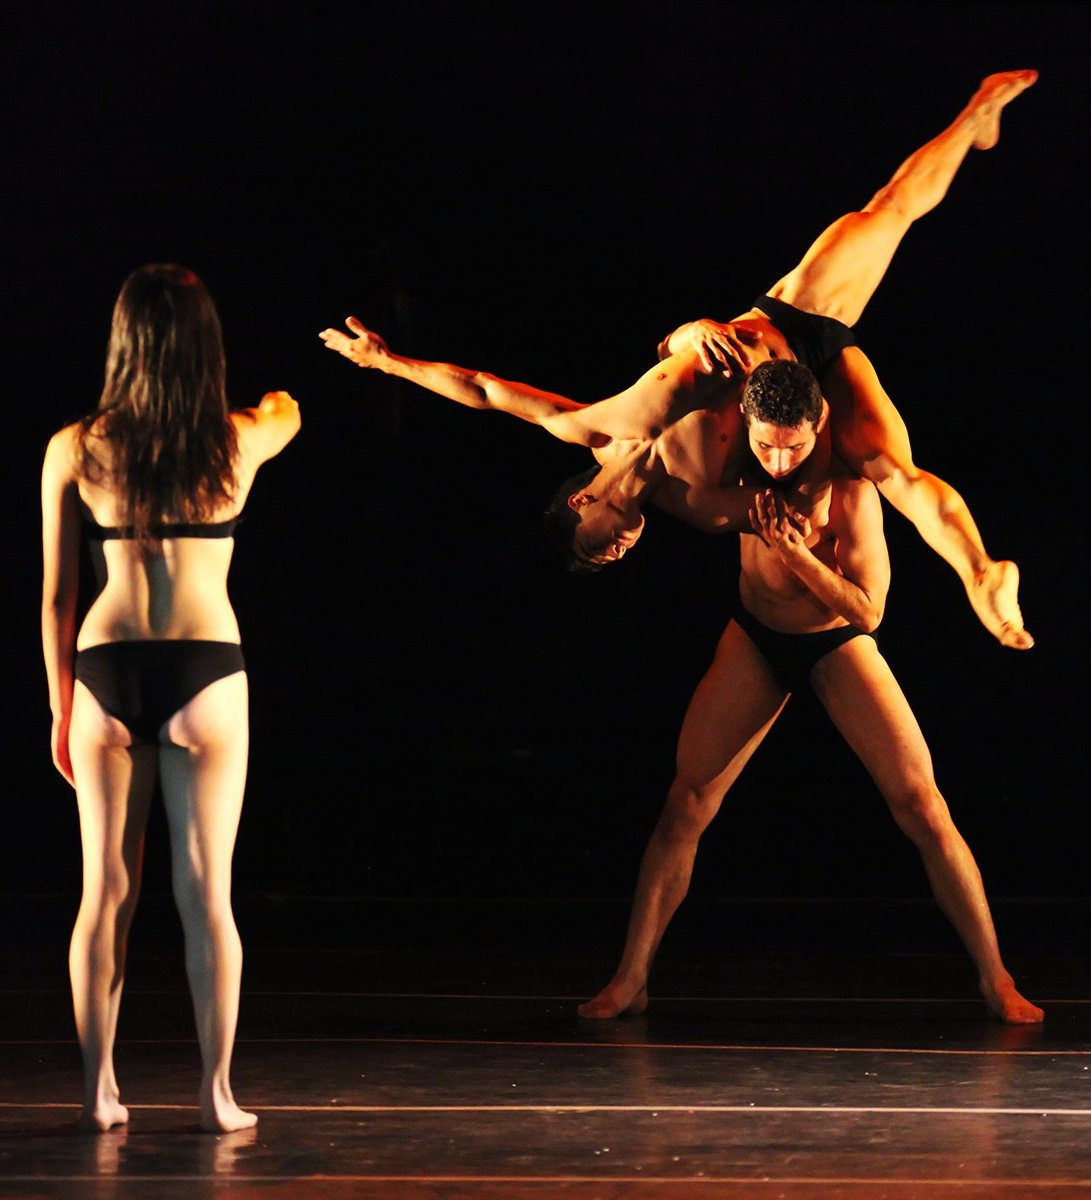 aaas dance your dissertation Aaas dance your dissertation aaas dance your dissertation browse evening classes and full time courses develop your skills online todaydissertation conflict.